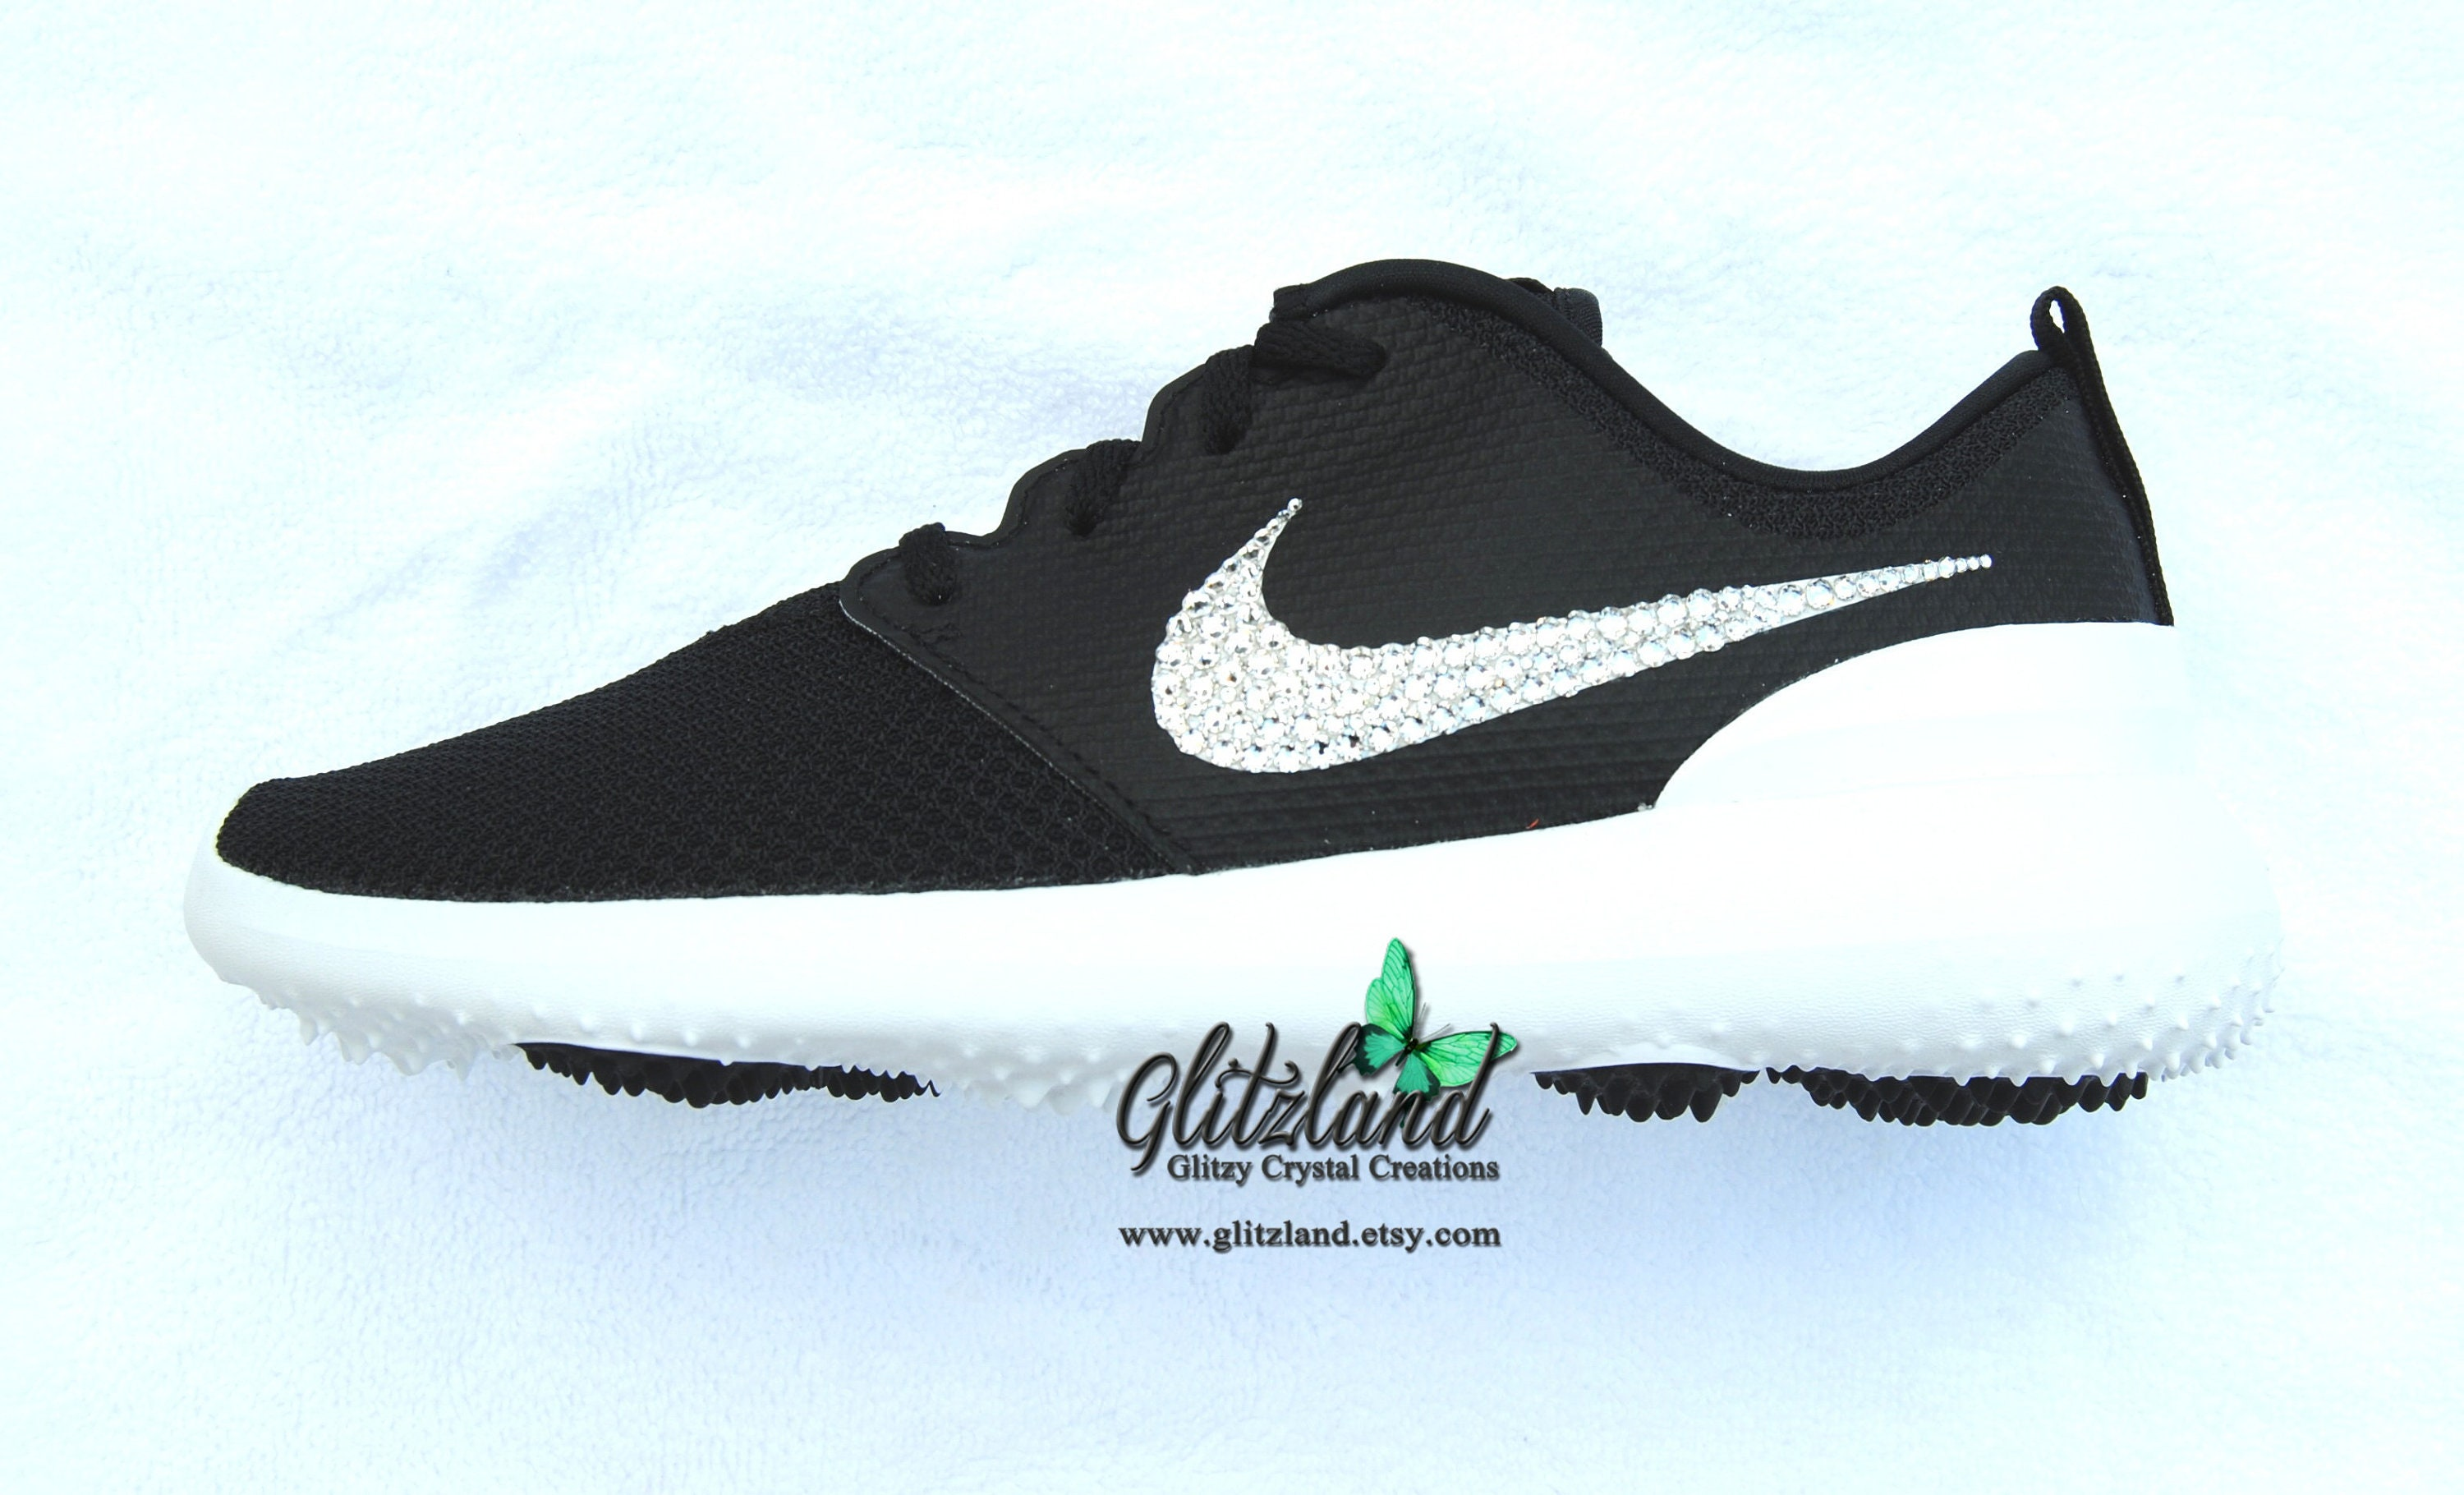 e0e1995fc Swarovski Nike Roshe G Womens Golf Shoes Customized with